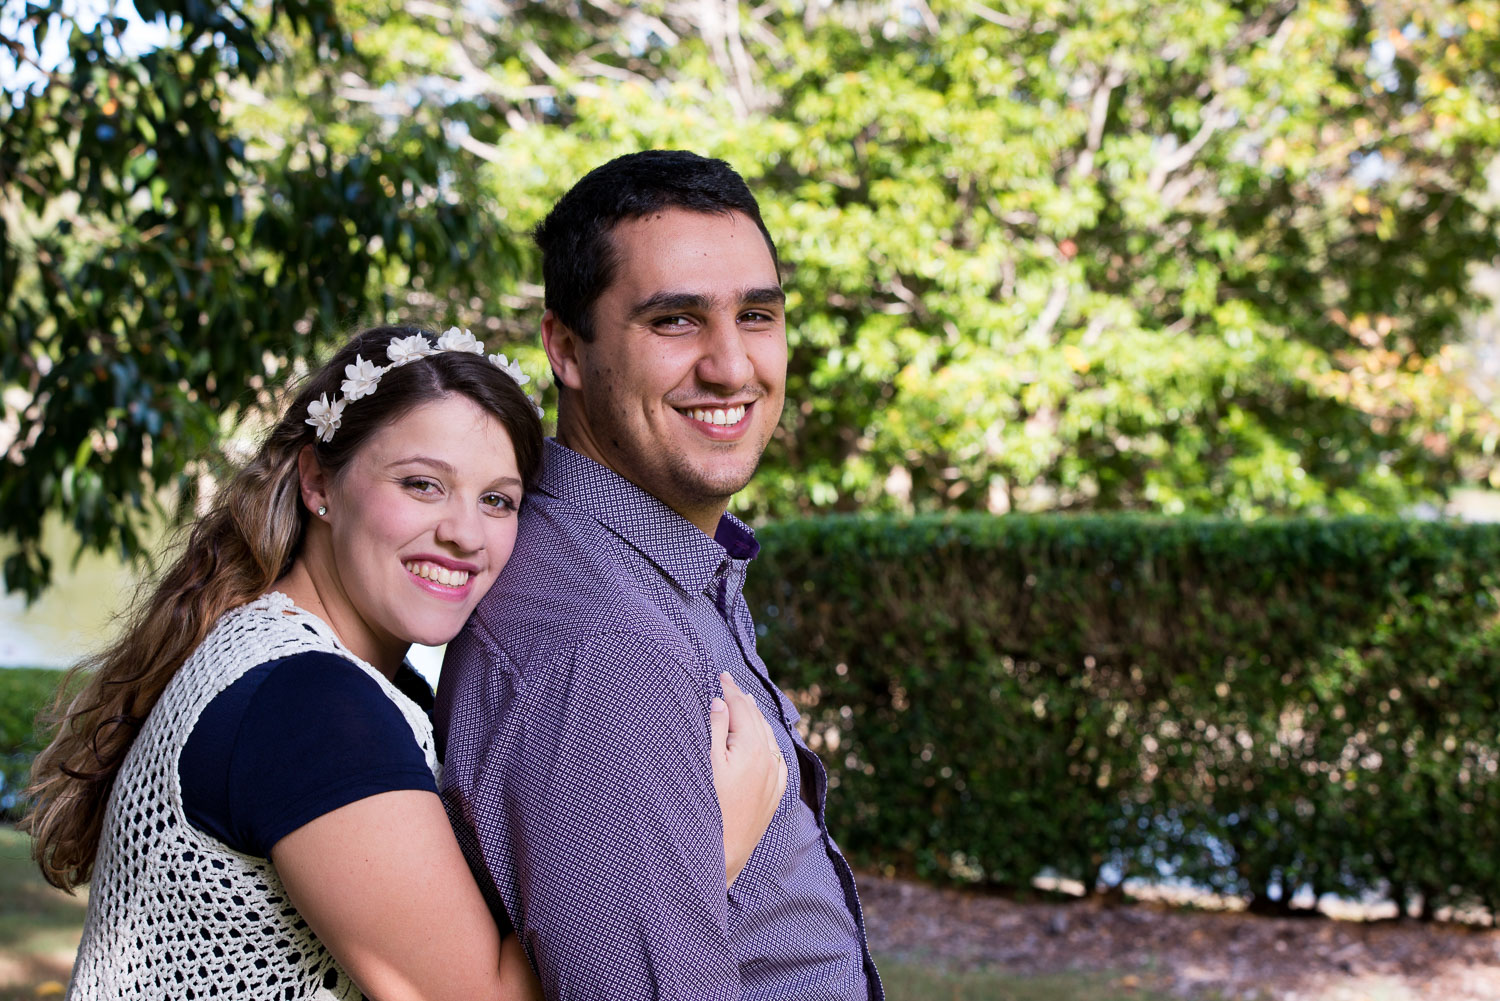 outdoor portrait of young married couple